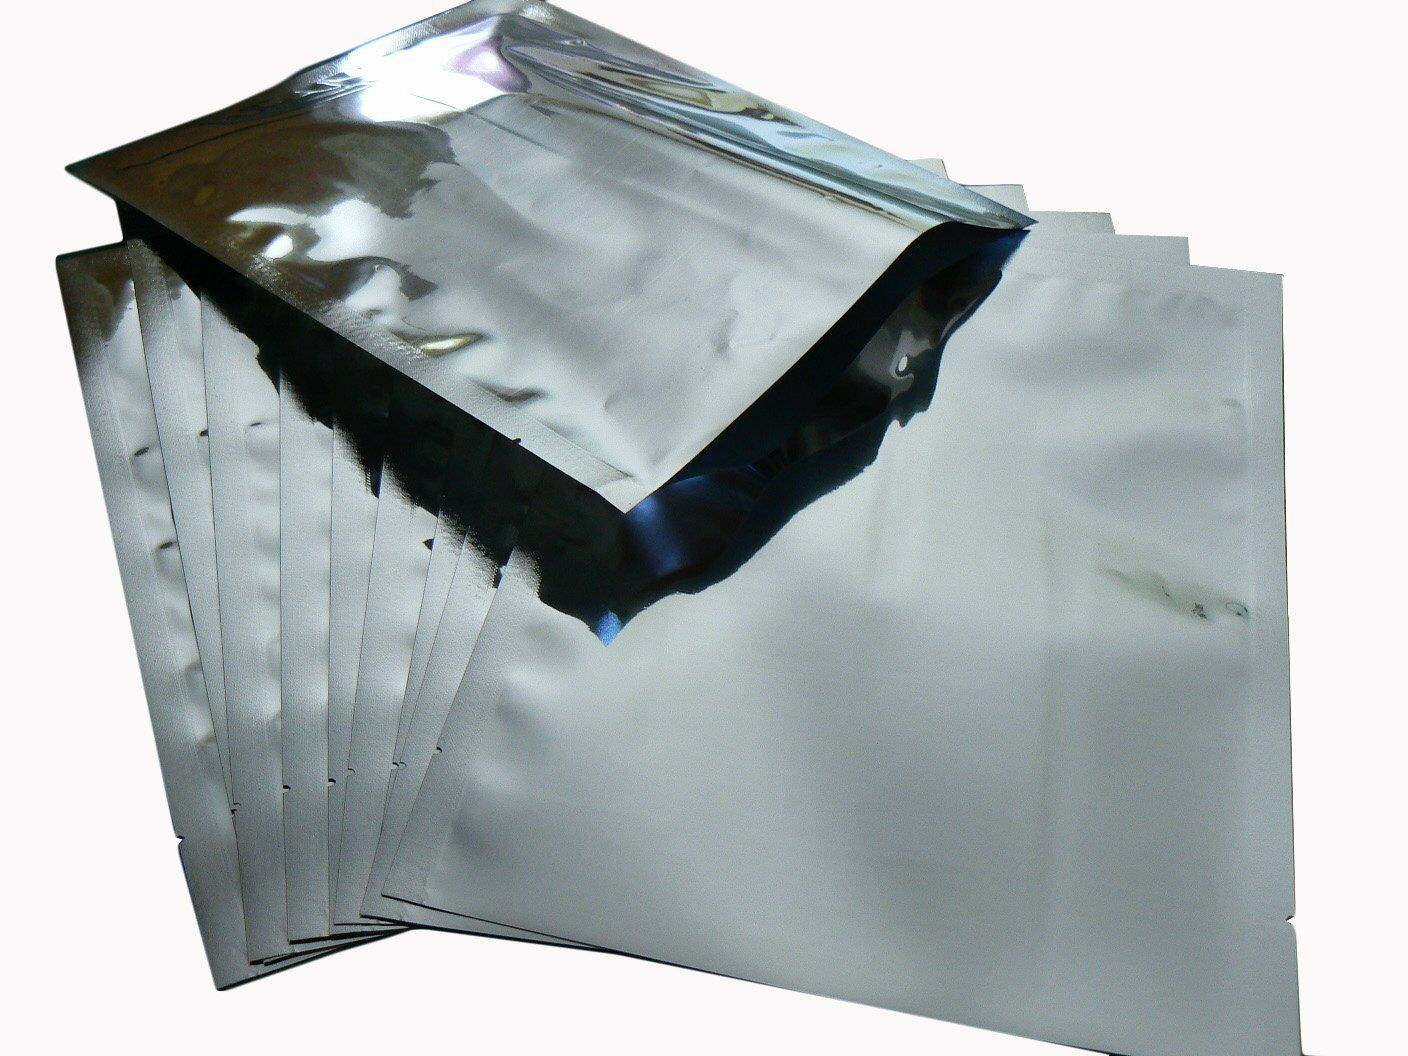 10x X-Large Mylar Bags 5 gallon - 20  x 30  and 10 X 2000cc oxygen absorbers